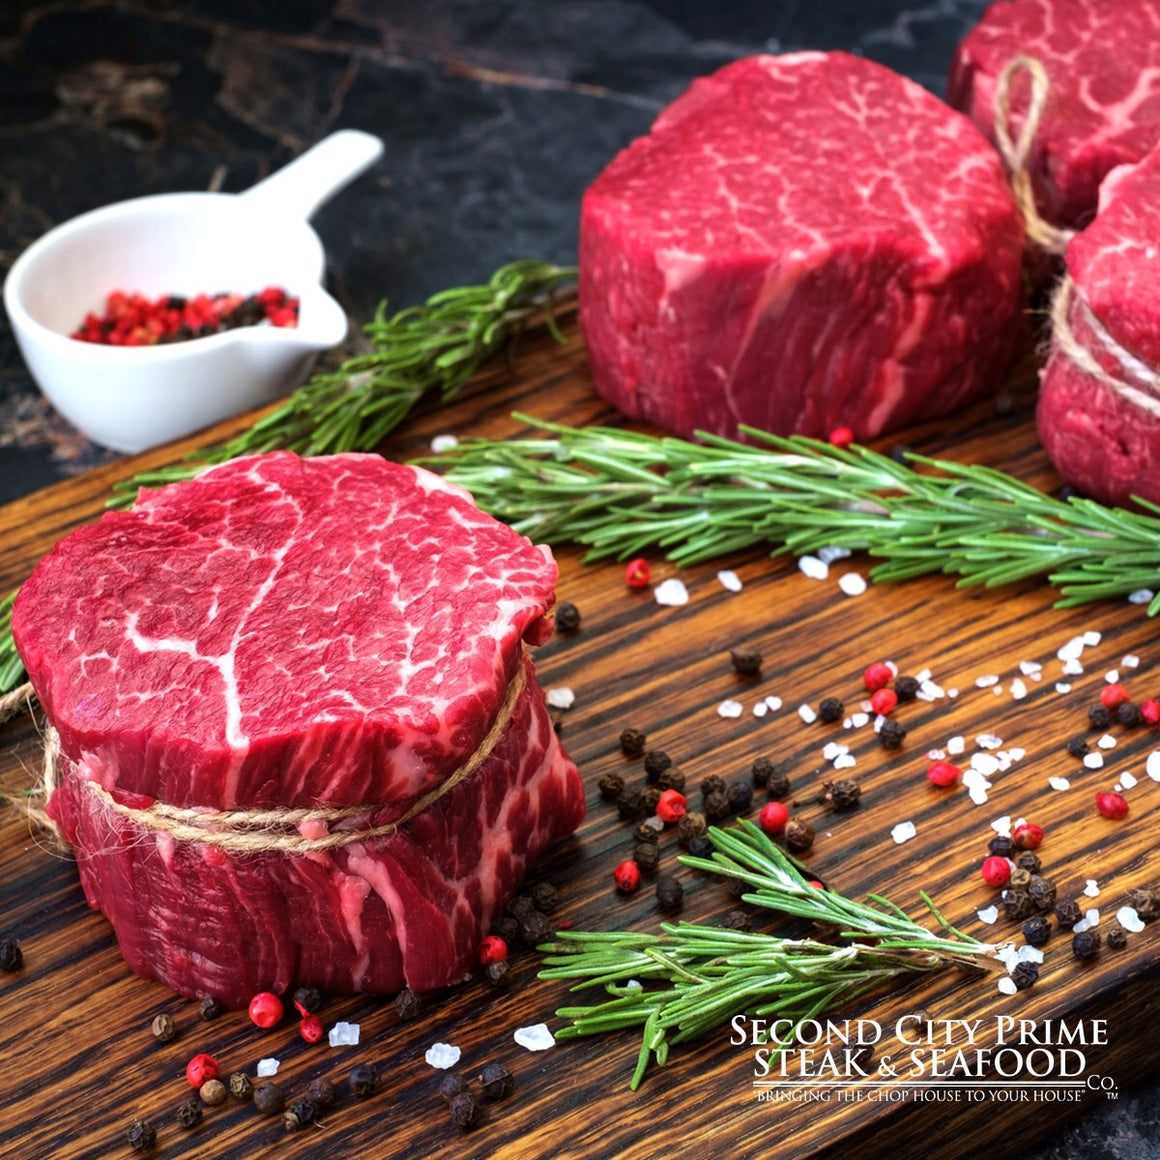 8-10oz USDA Prime Ribeye Filets - Second City Prime